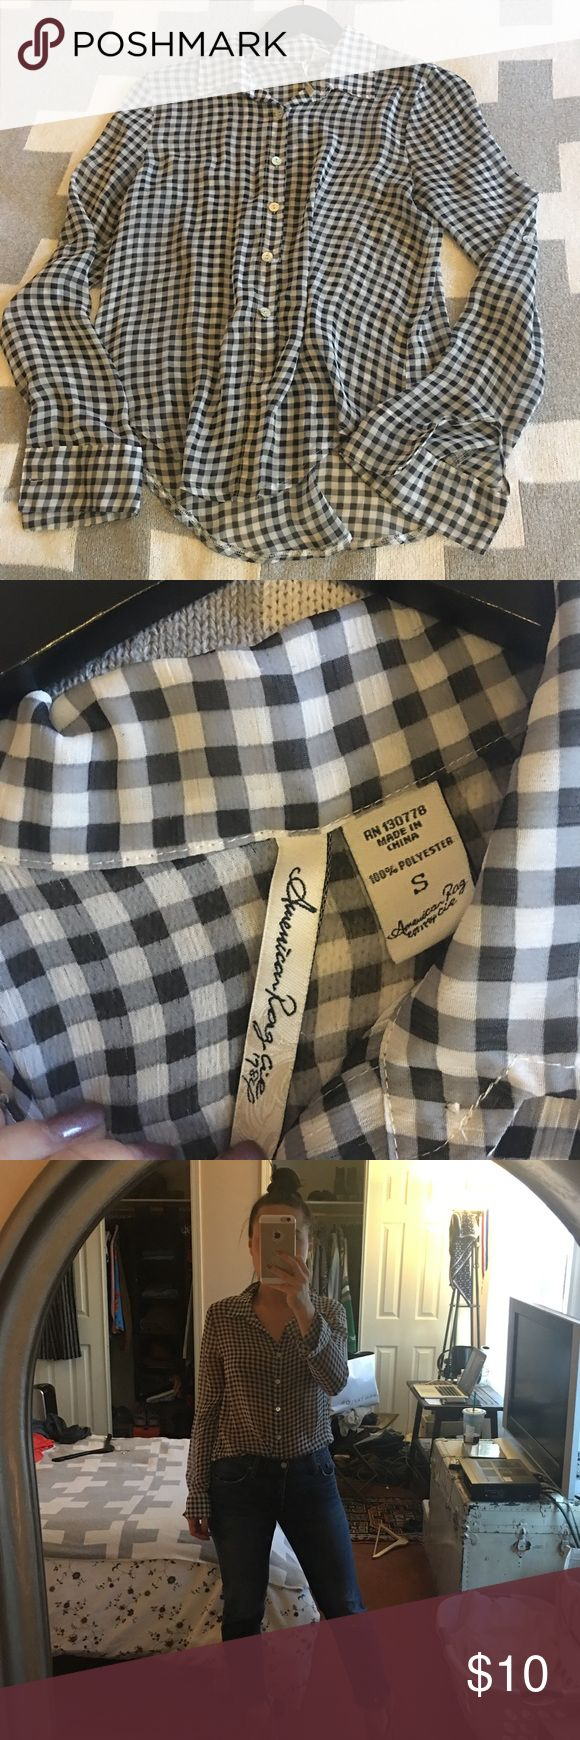 Checkered Sheer Blouse Size Small Priced to sell, Levis 501 for sale too Tops Blouses